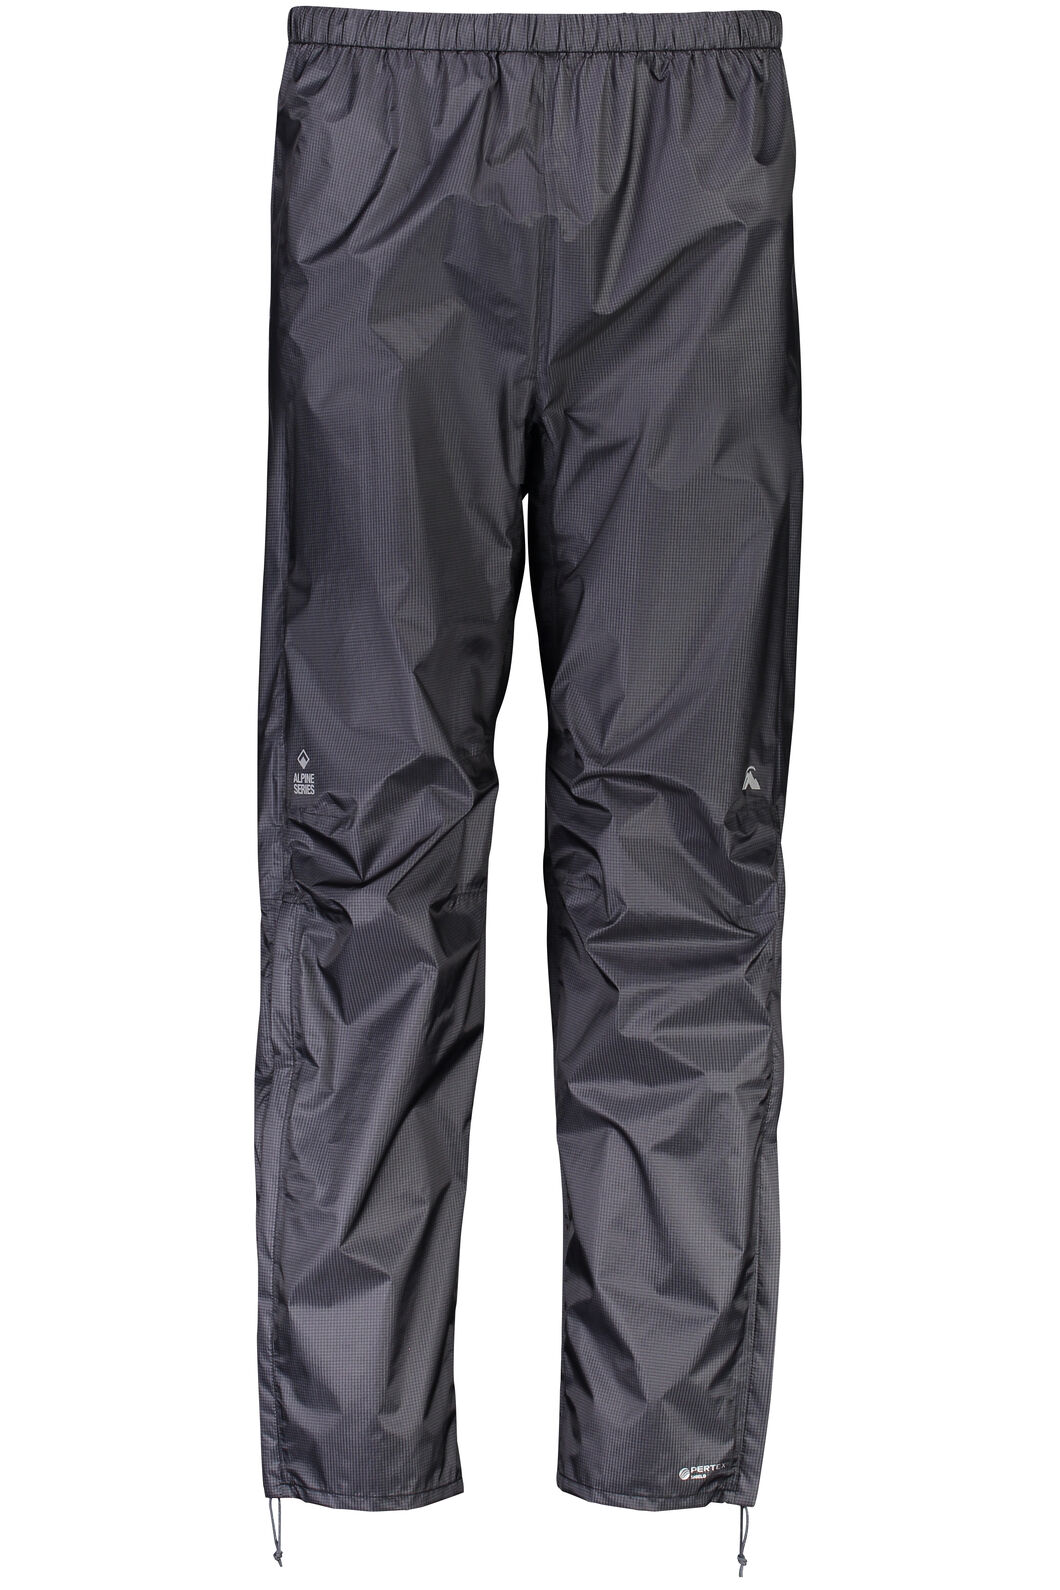 Macpac Hightail Pertex® Shield Rain Pants - Men's, Black, hi-res